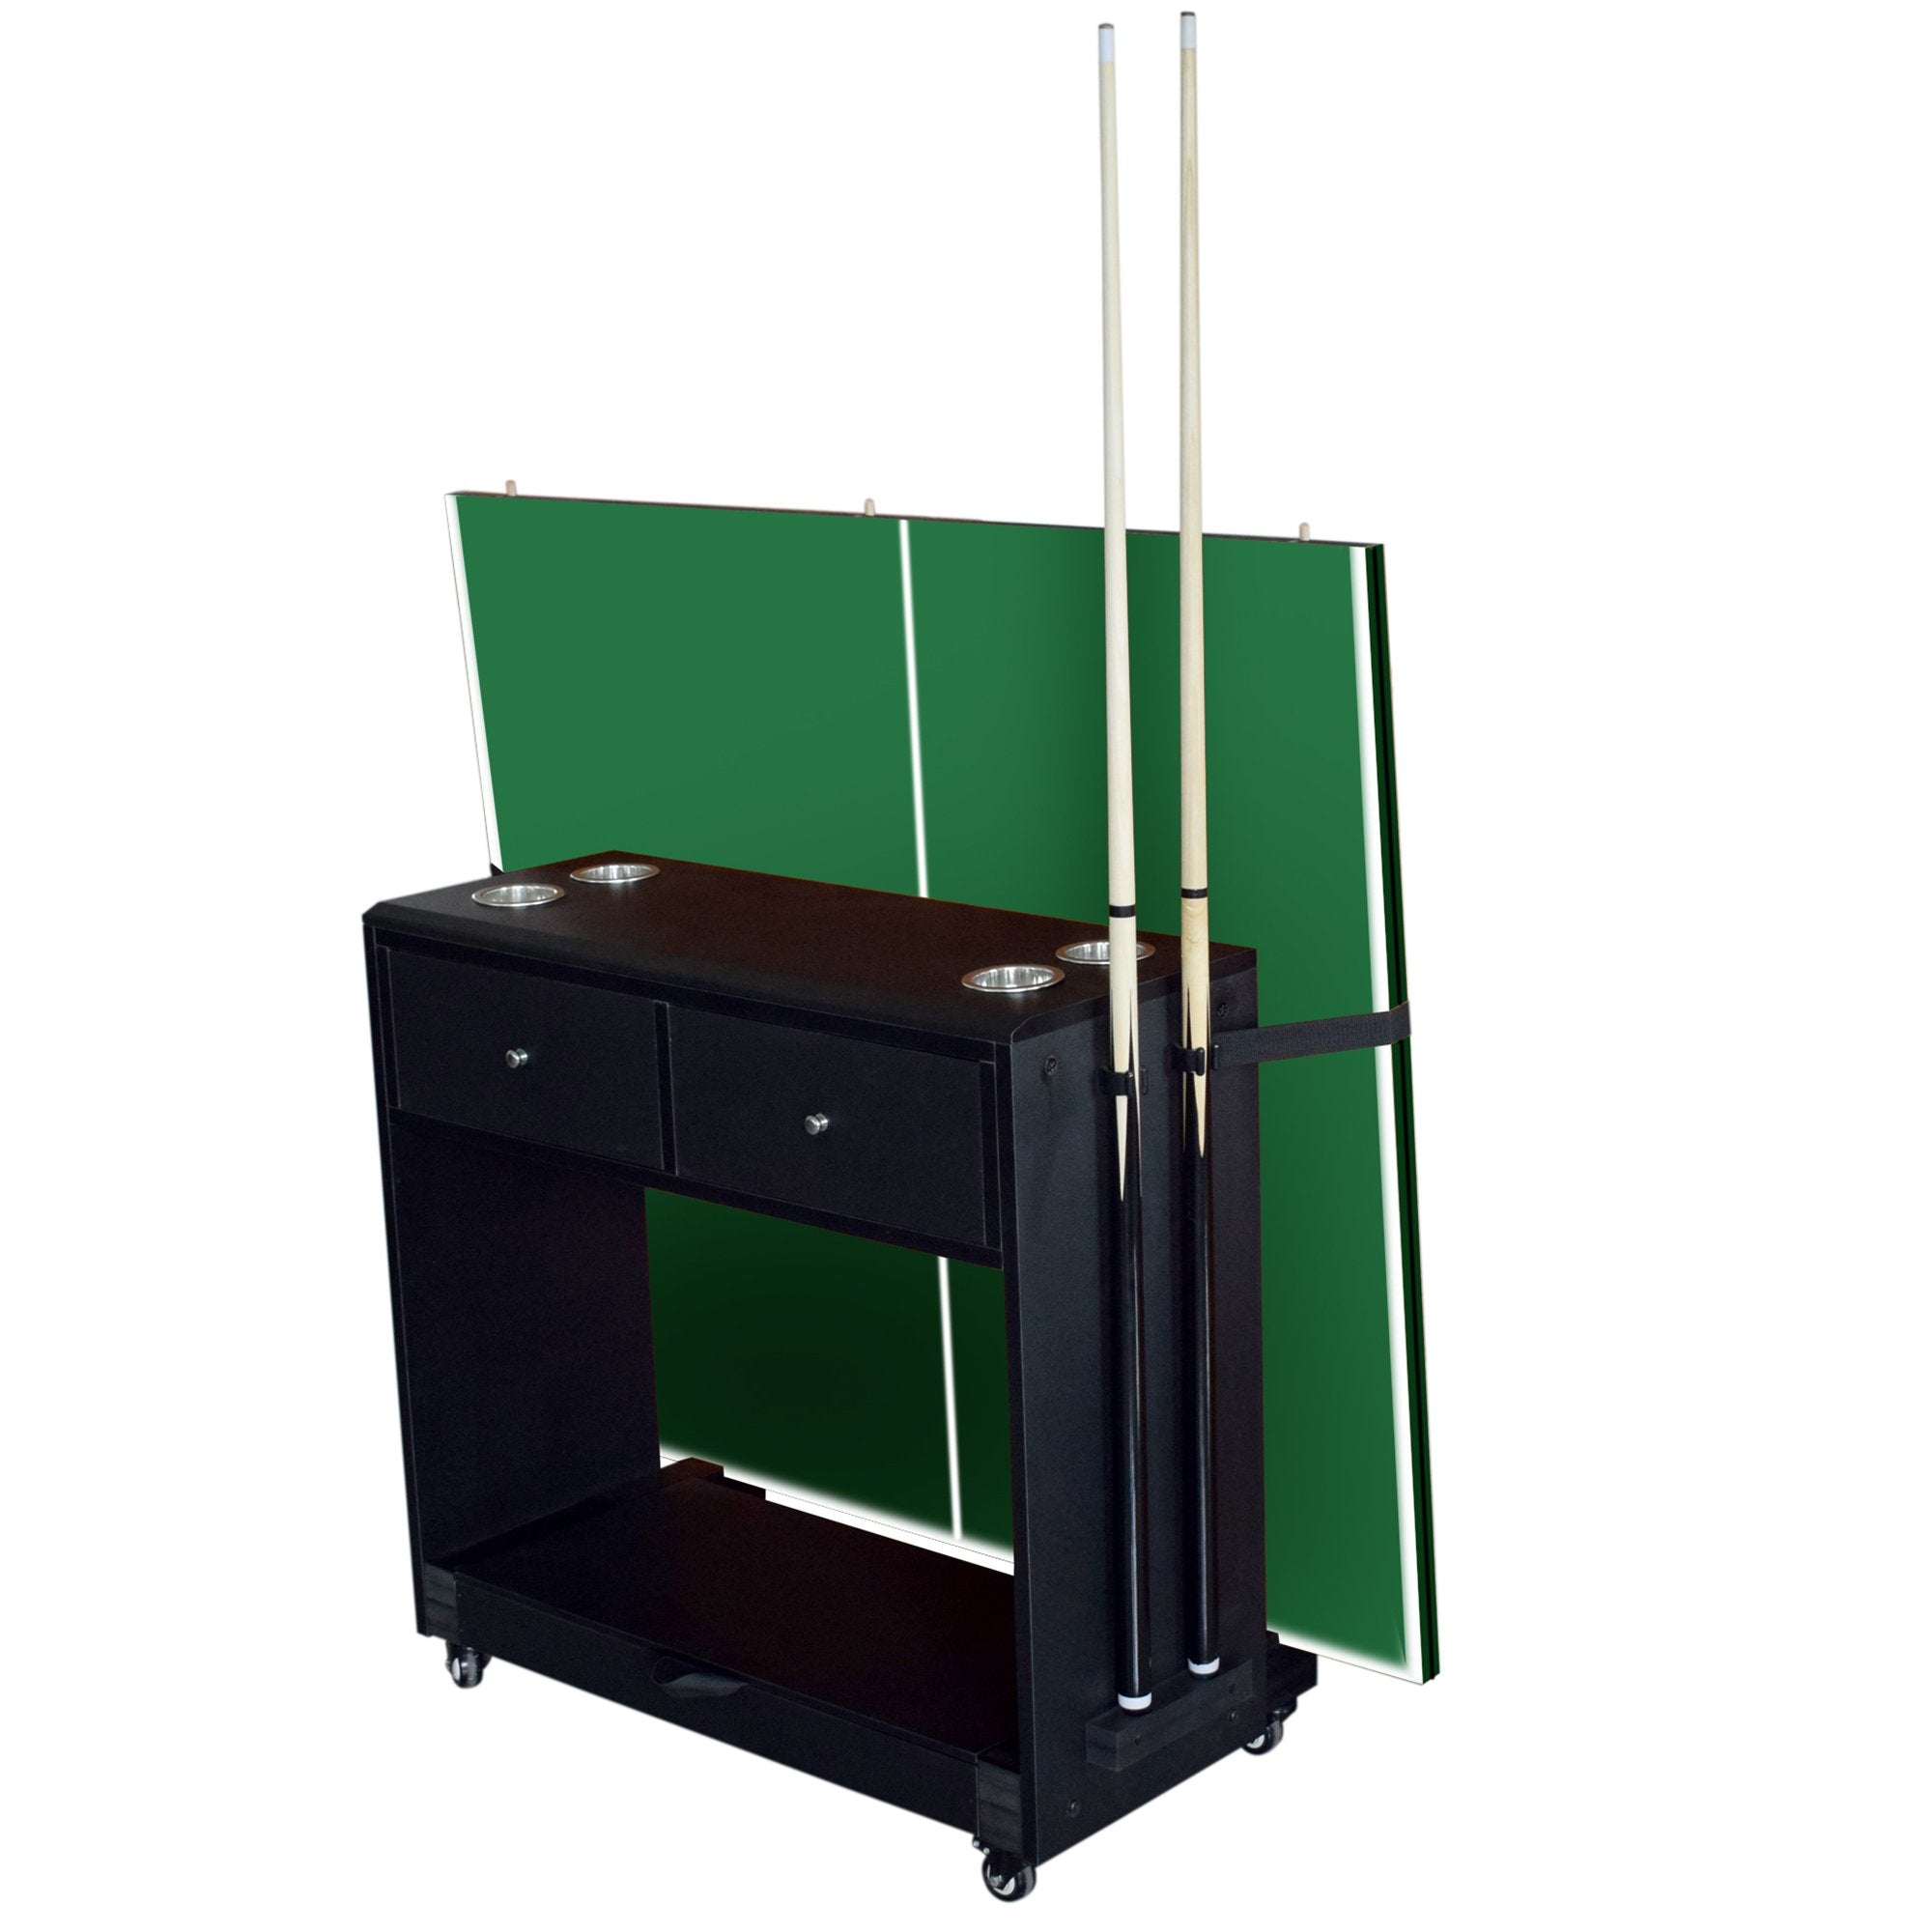 Hathaway Multi-Purpose Game Room Storage Caddy - Gaming Blaze